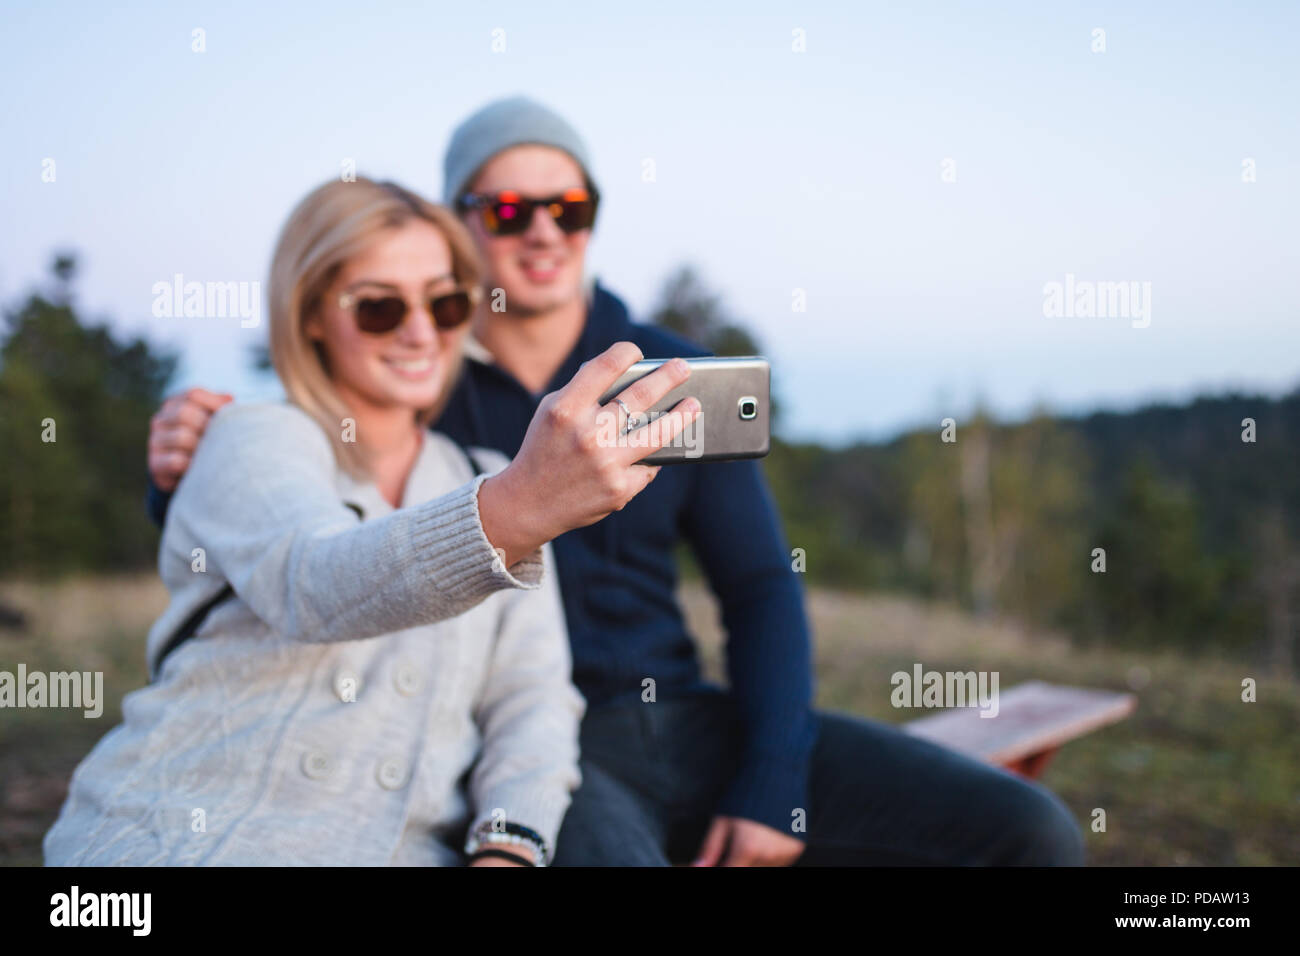 Young couple sitting on bench and taking selfie photo. Stock Photo